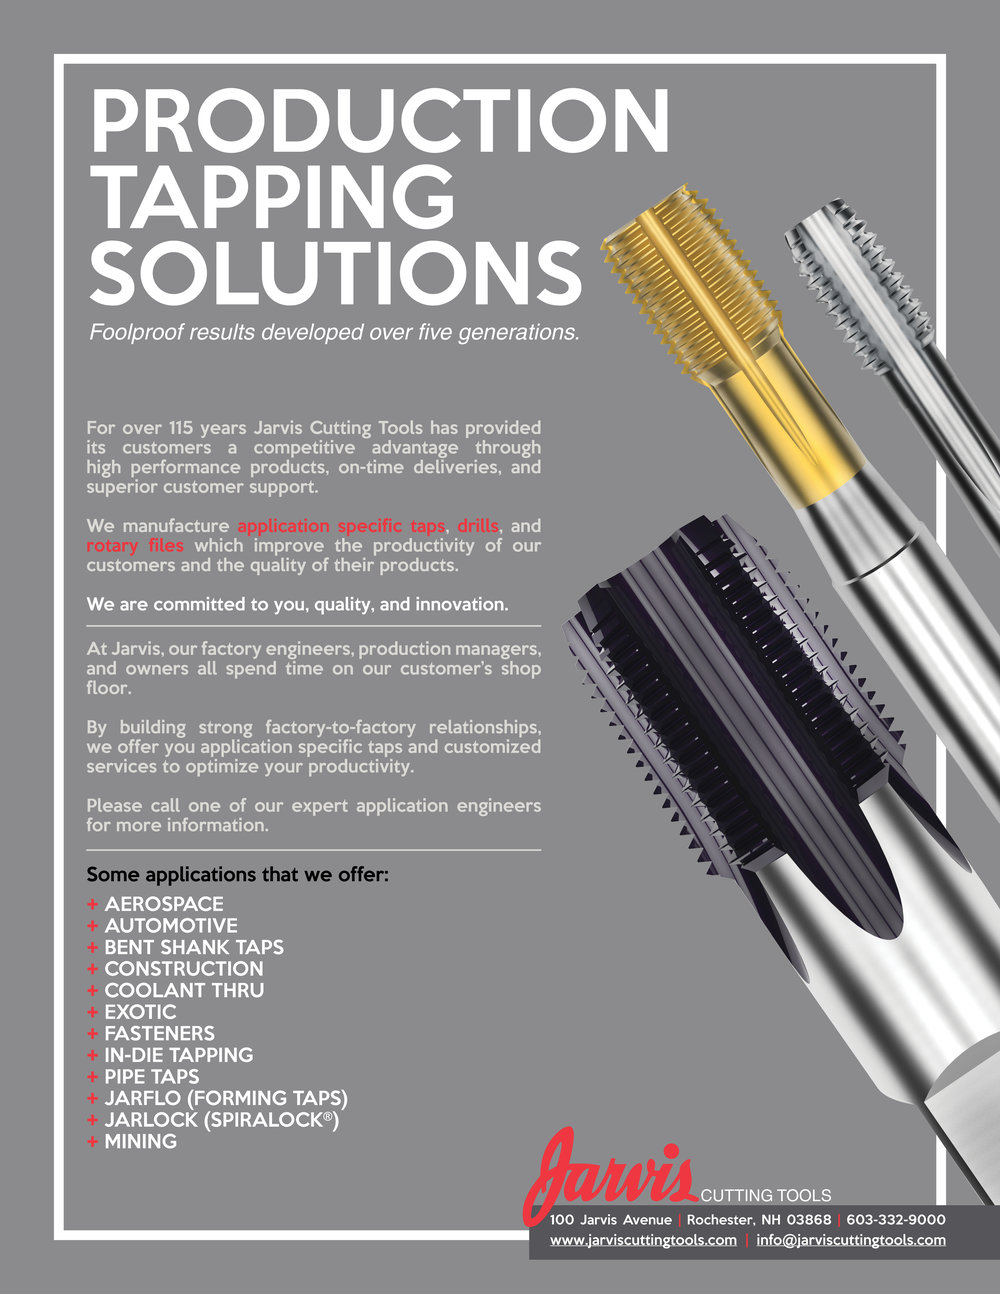 About Jarvis Cutting Tools 2017.jpg